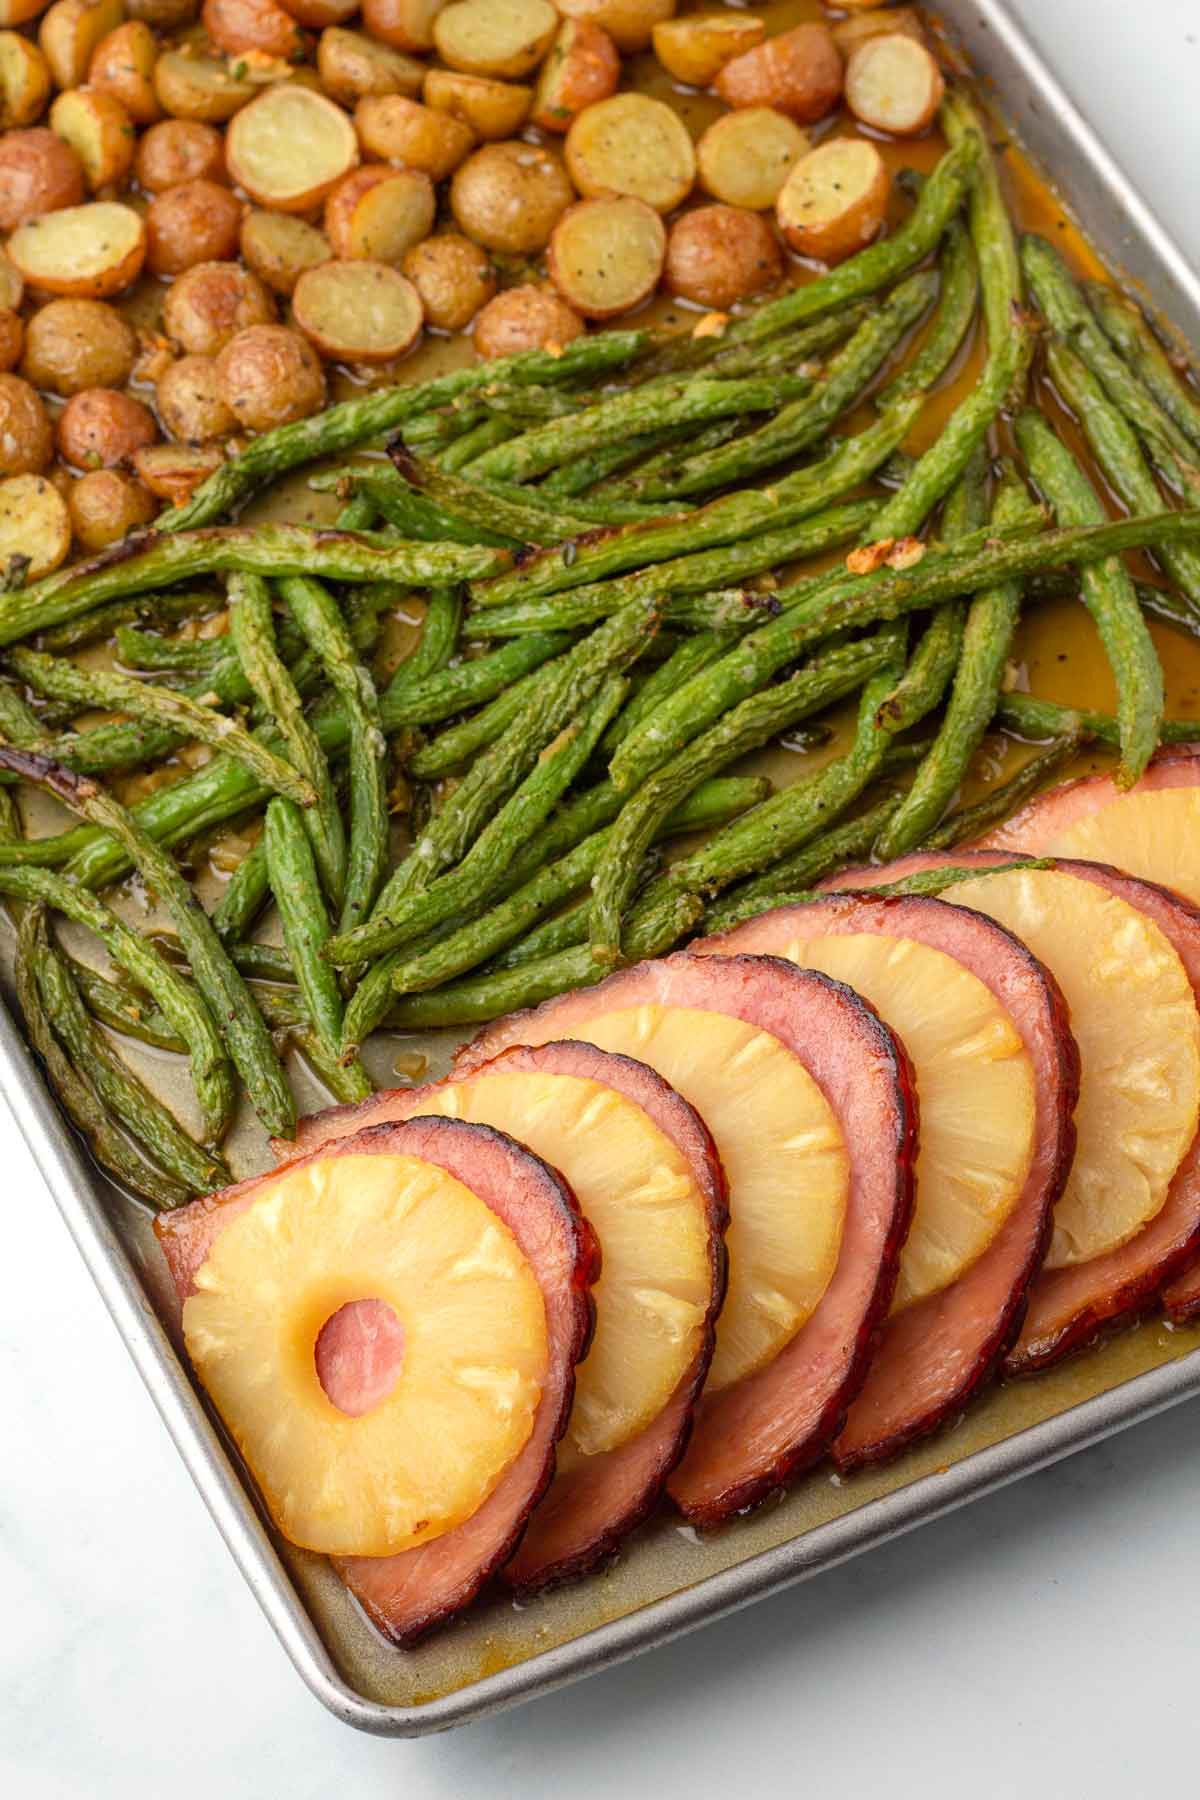 potatoes, green beans, pineapple, and ham slices on a sheet pan.